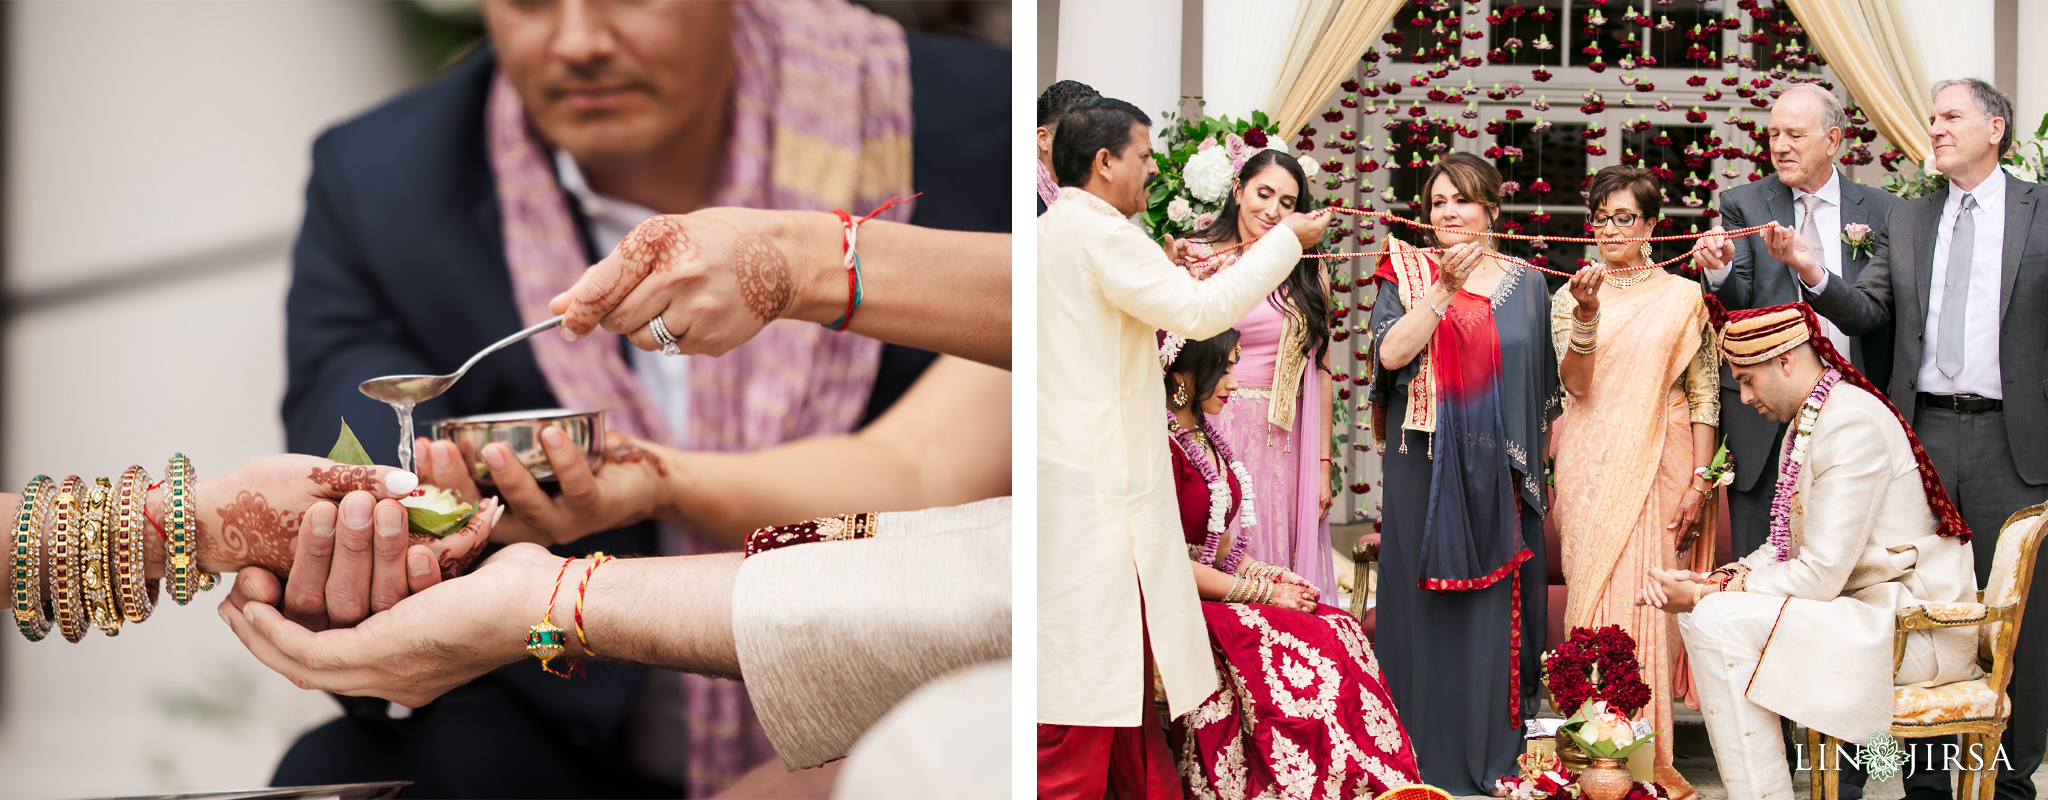 23 The Ebell Los Angeles Indian Wedding Ceremony Photography